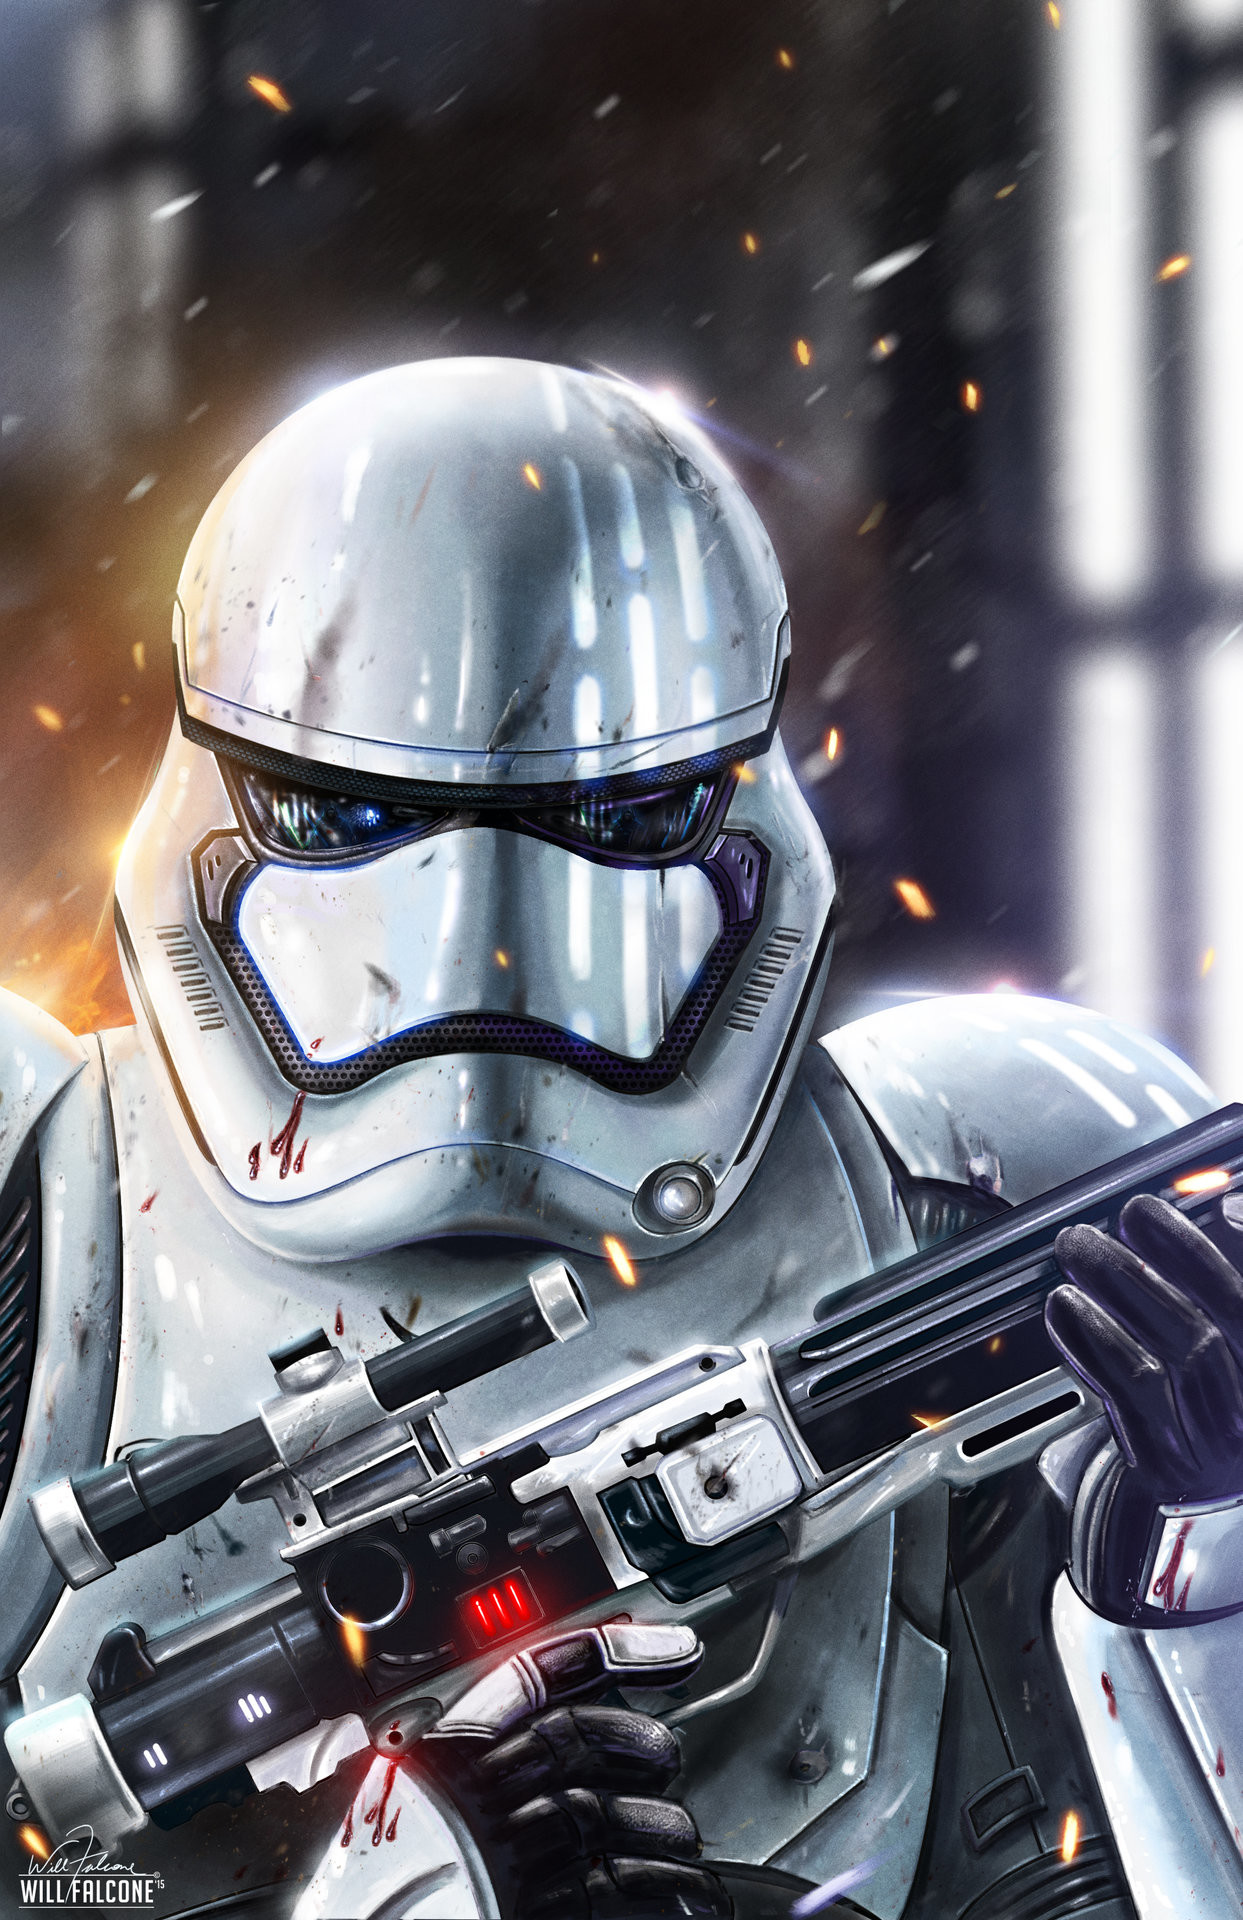 Here's a Star Wars The Force Awakens inspired new storm trooper painting I  created. I